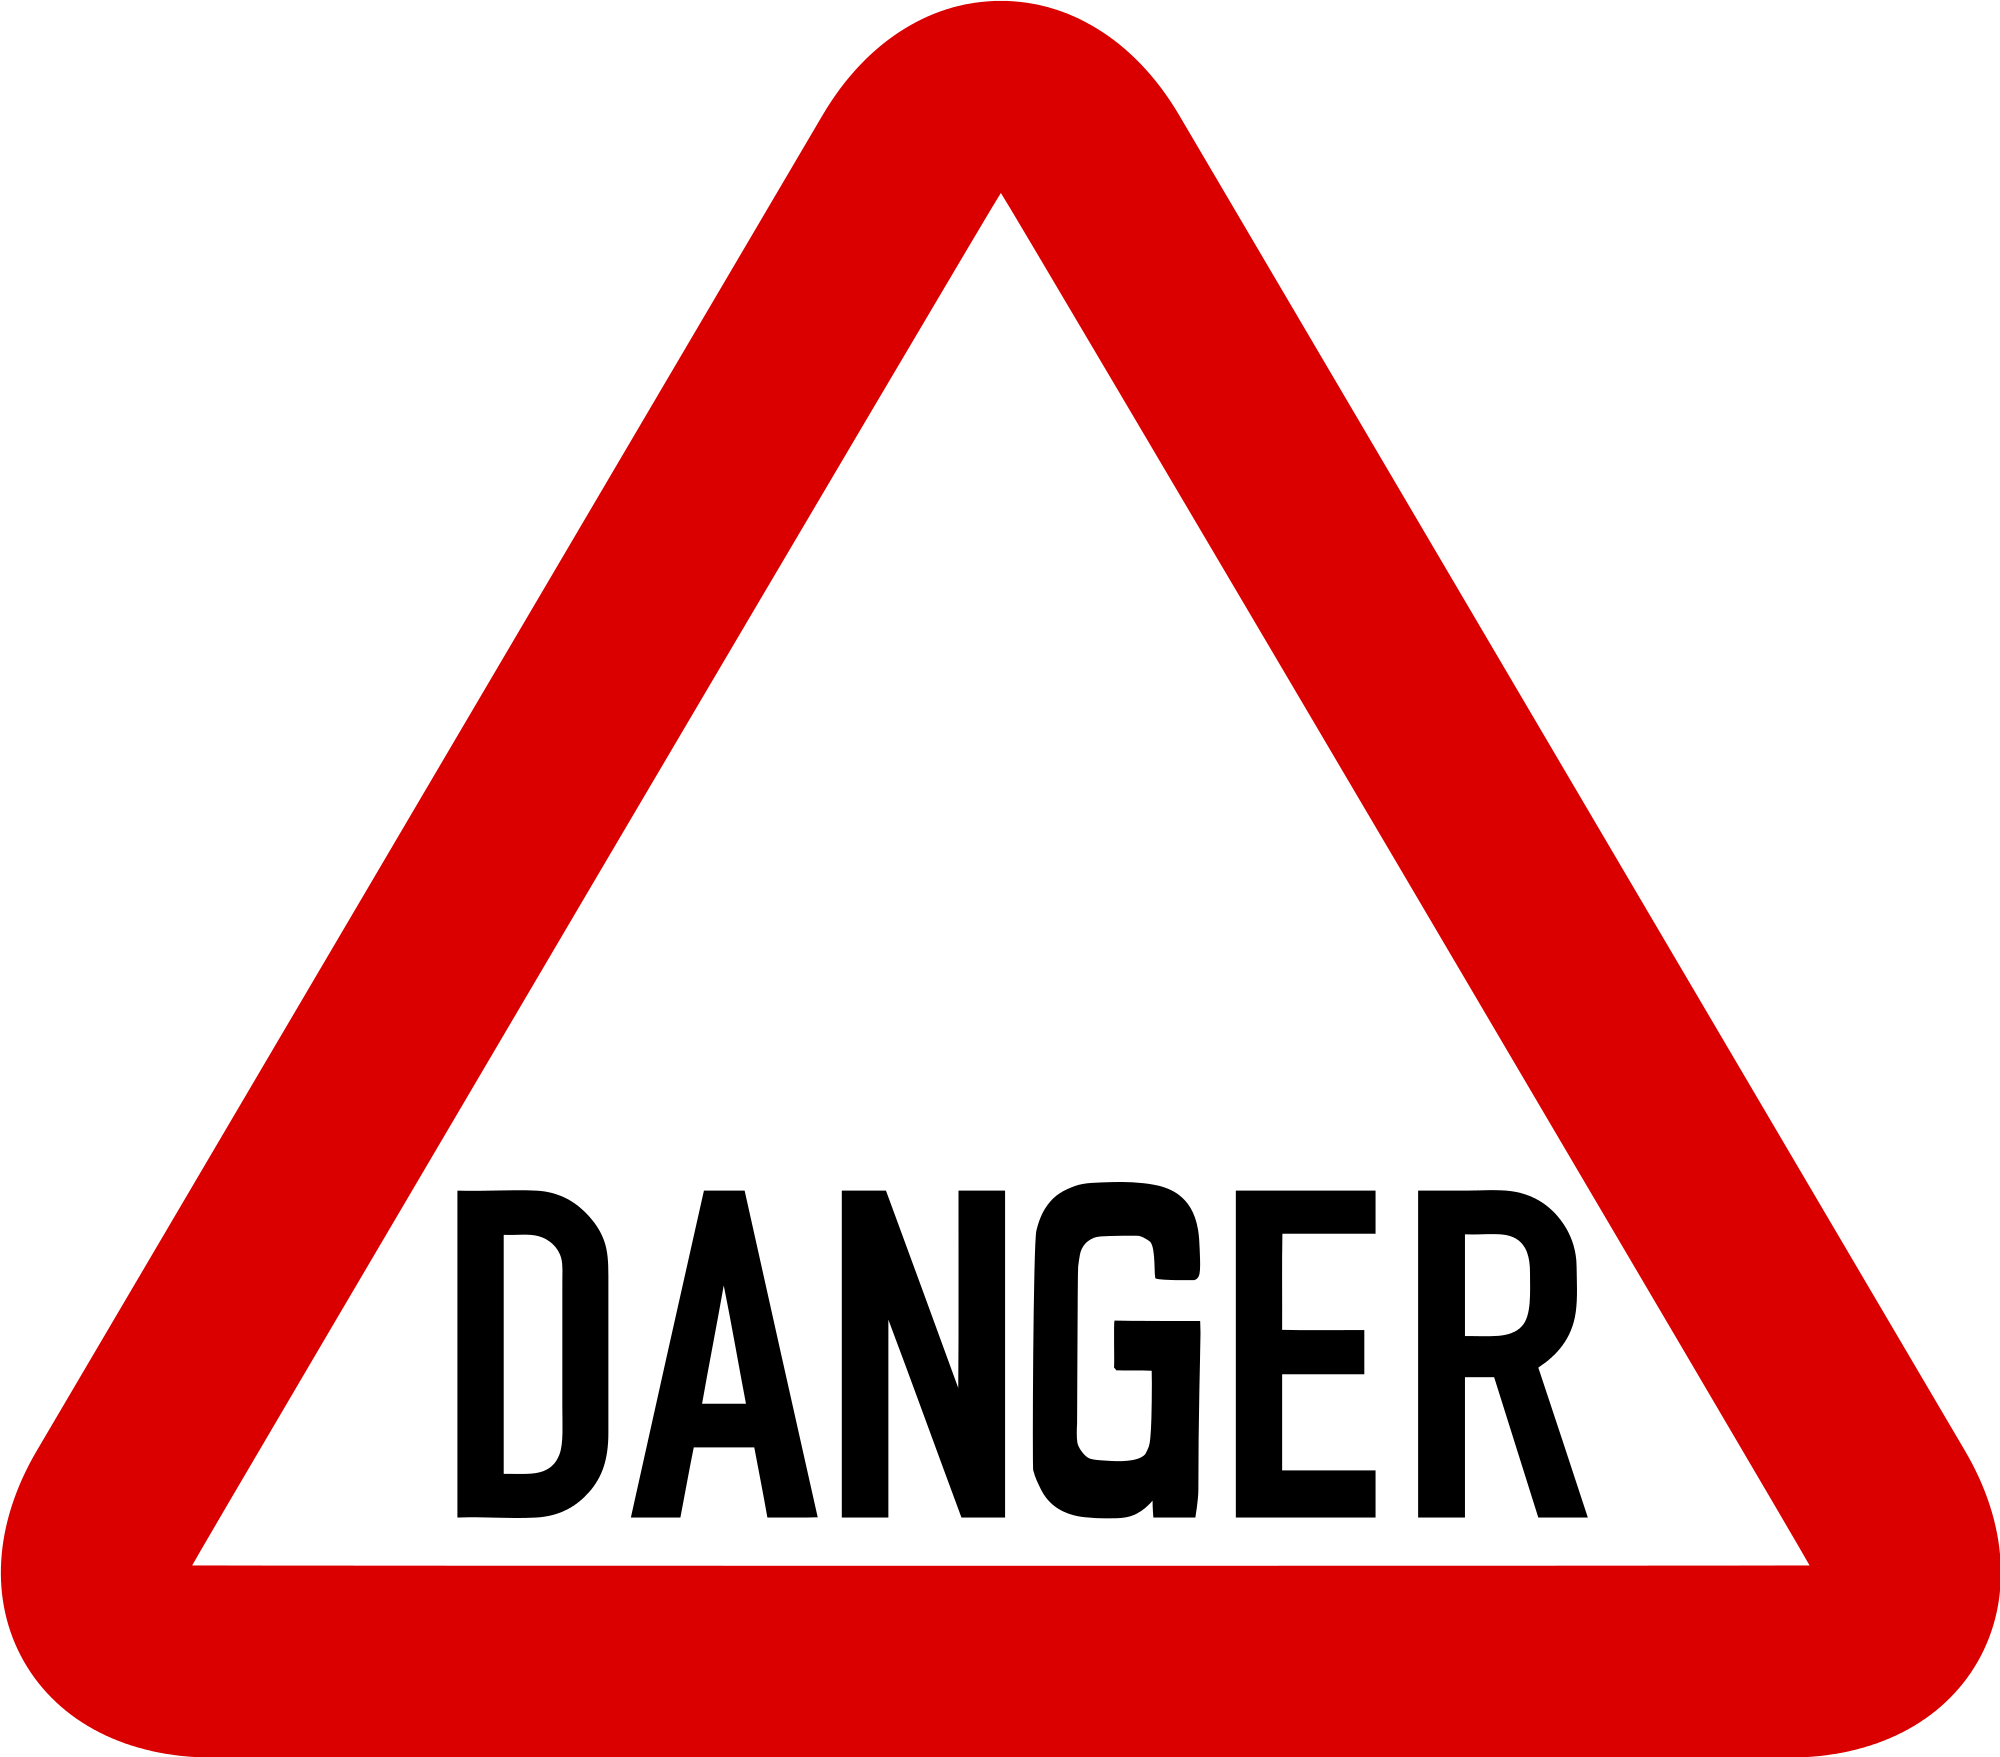 Free cliparts download clip. Danger clipart dangerous road graphic freeuse stock